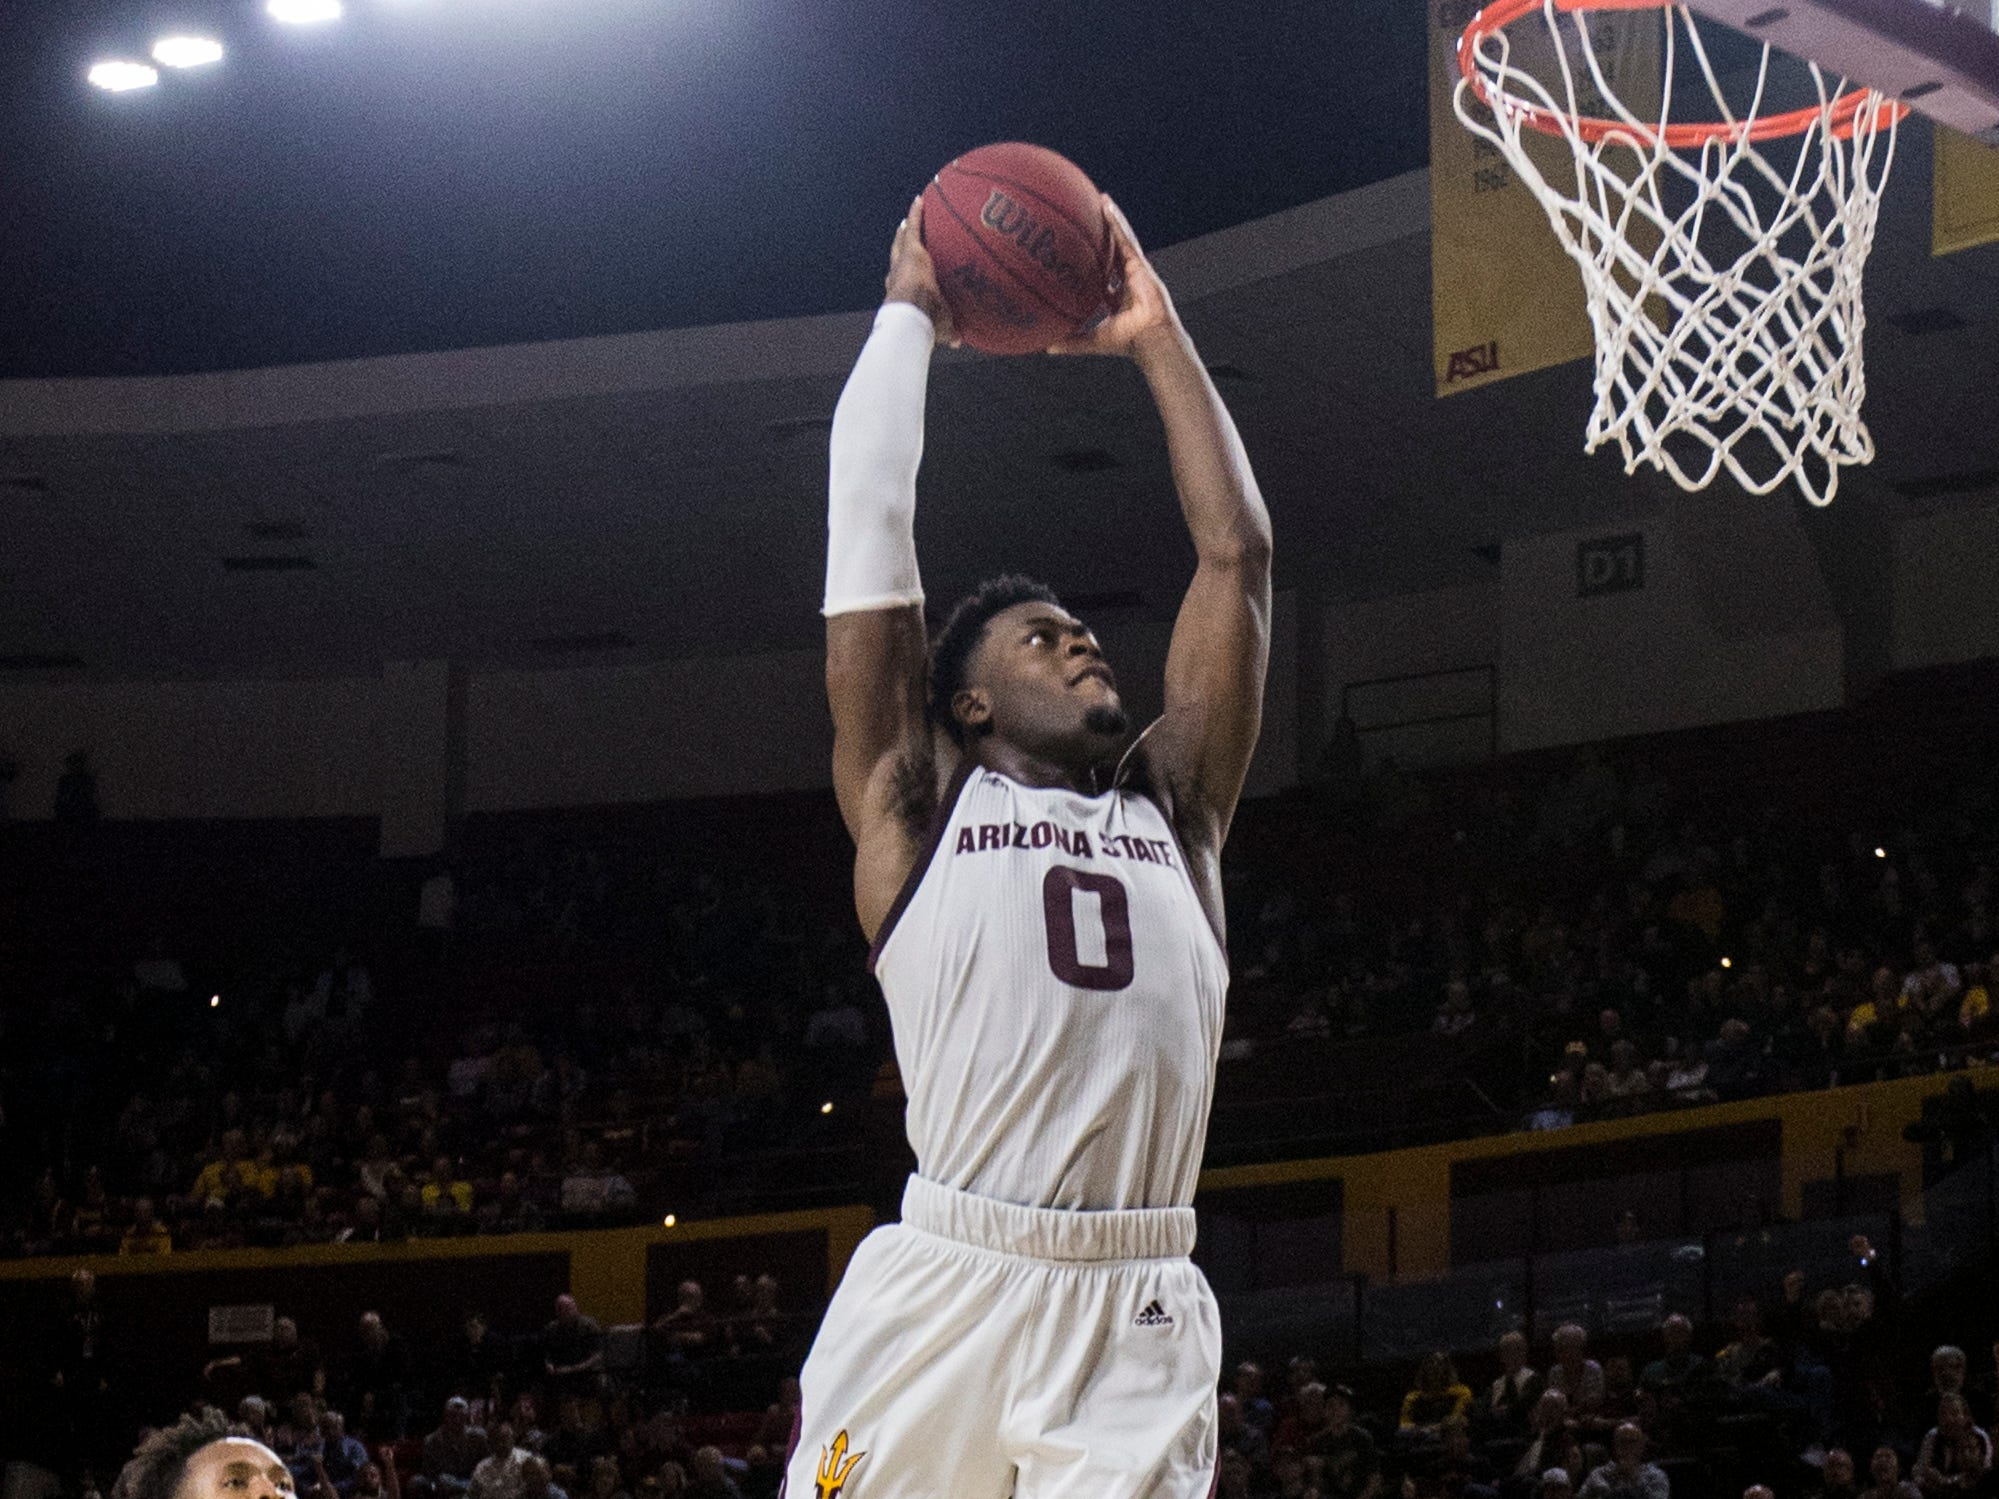 Arizona State's Luguentz Dort dunks against Texas Southern in the first half on Saturday, Dec. 1, 2018, at Wells Fargo Arena in Tempe, Ariz.